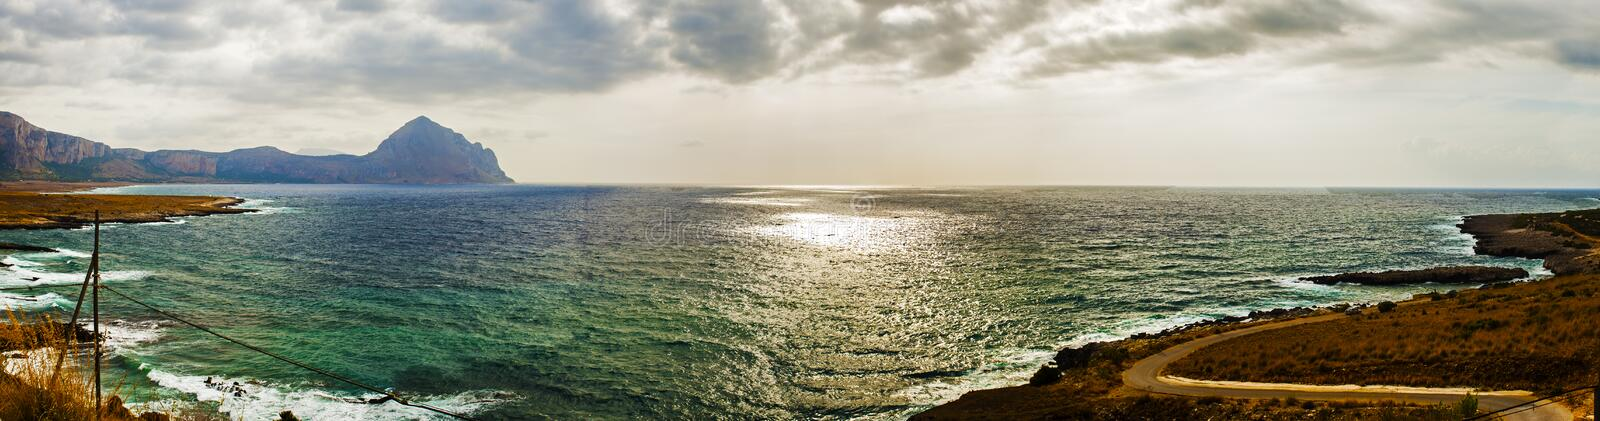 Approaching storm on a beach of Sicily. The sun filters through a hole in the clouds and stormy royalty free stock images